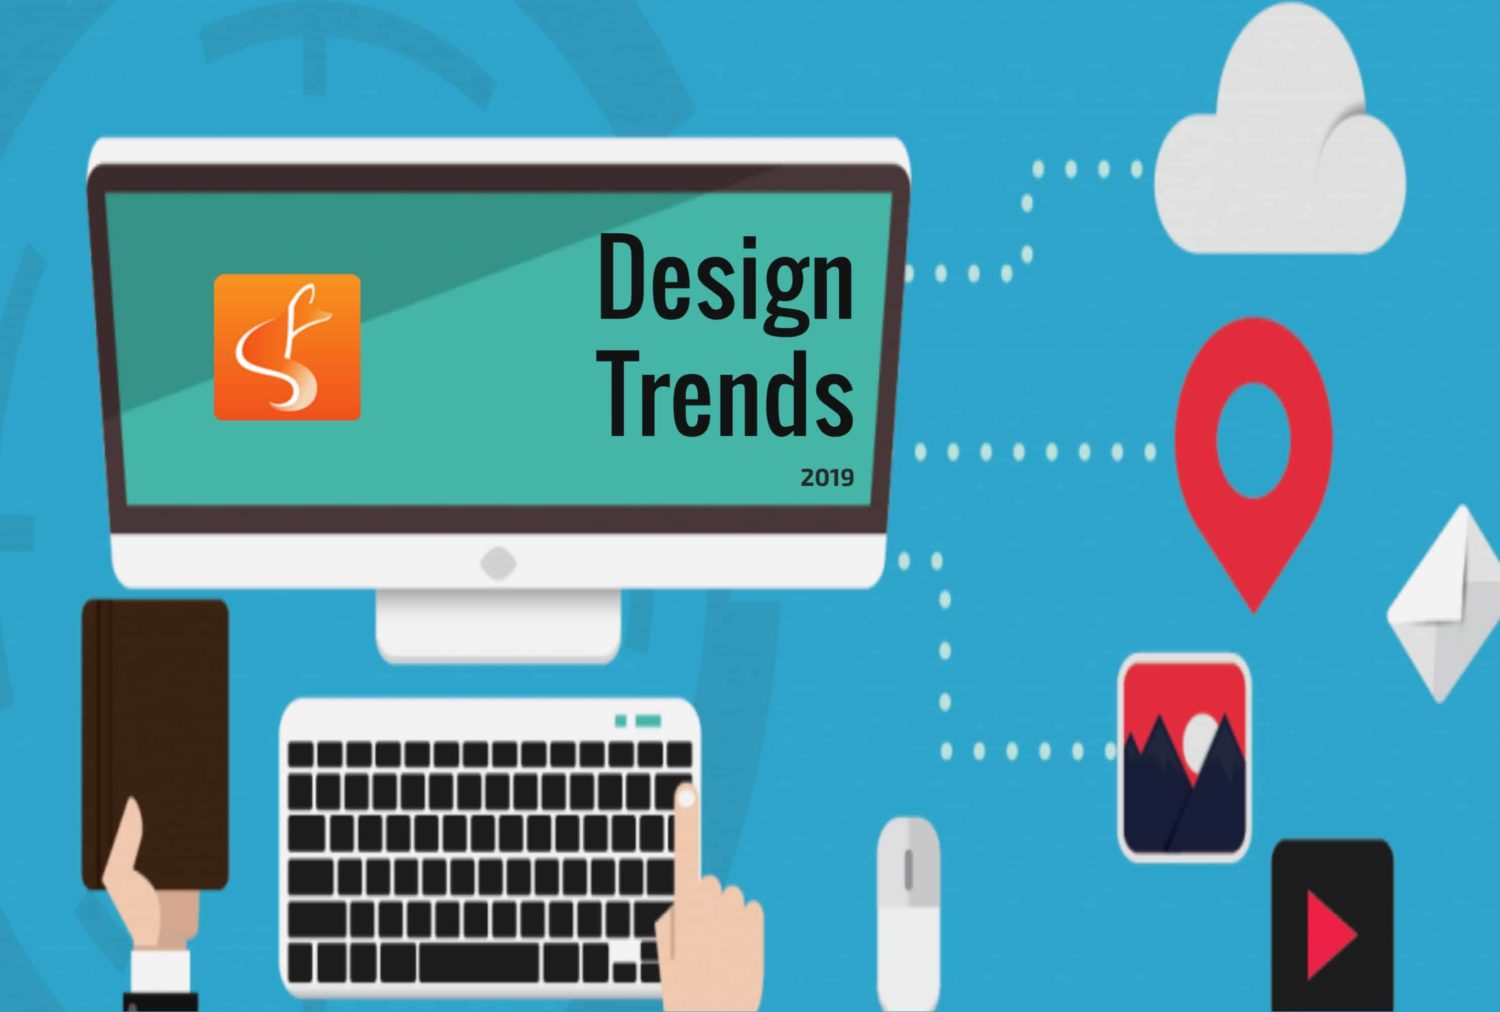 web design trends, design trends 2019, web design london ontario - SlyFox Web Design and Marketing